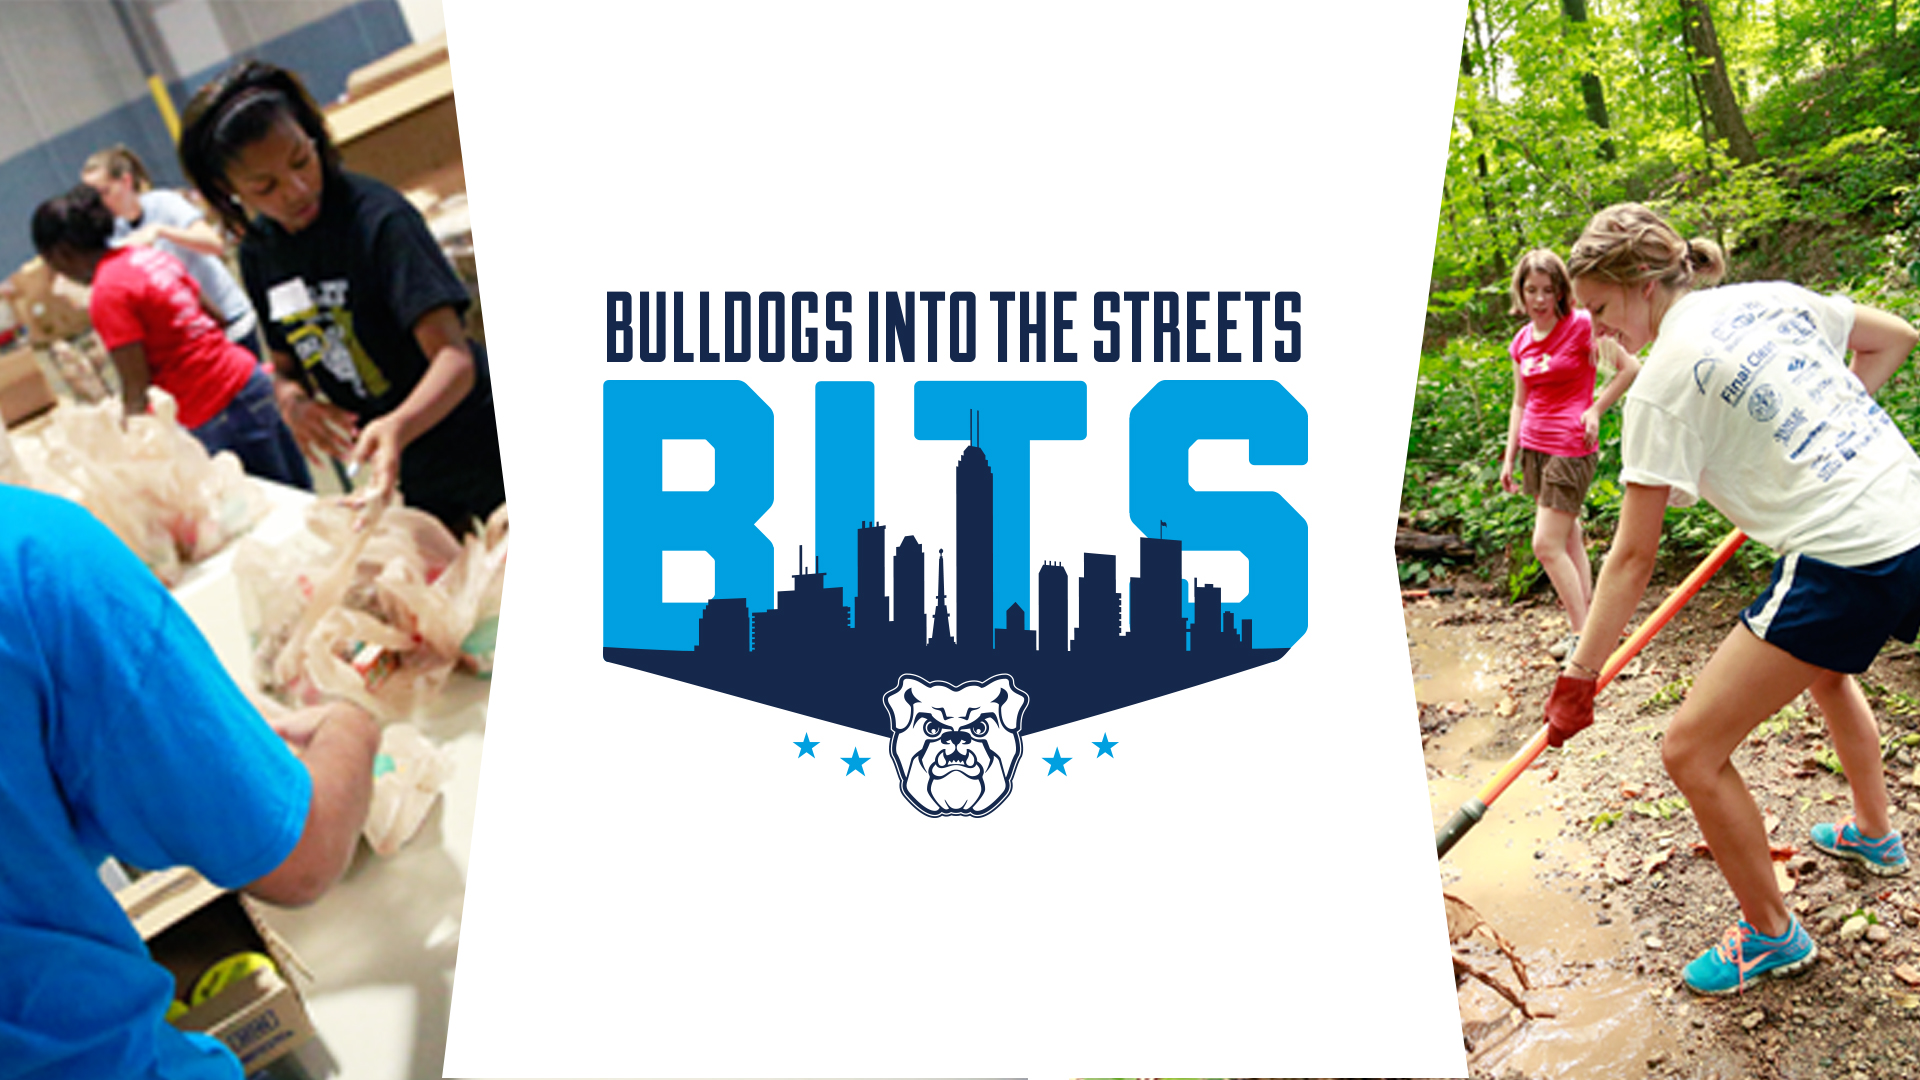 Central Indiana Bulldogs Into the Streets (BITS)